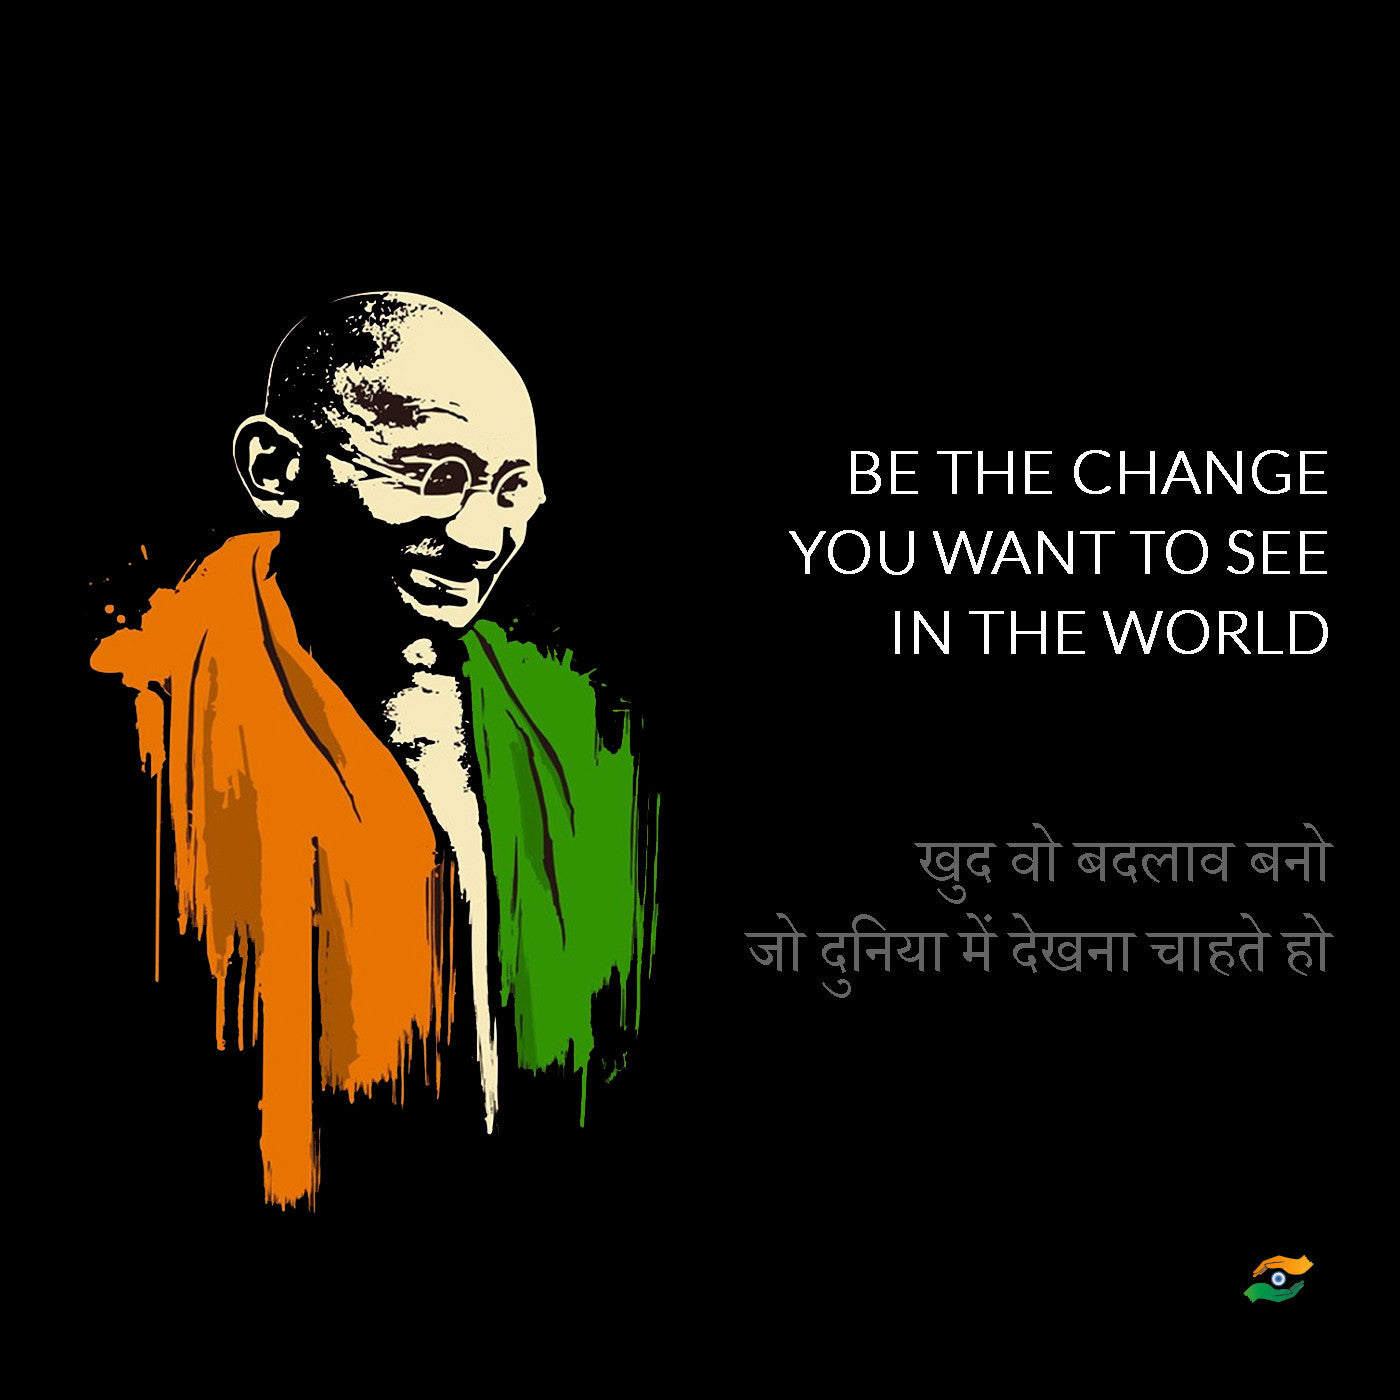 Mahatma Gandhi Quotes In Hindi , Be The Change You Want To See In The World